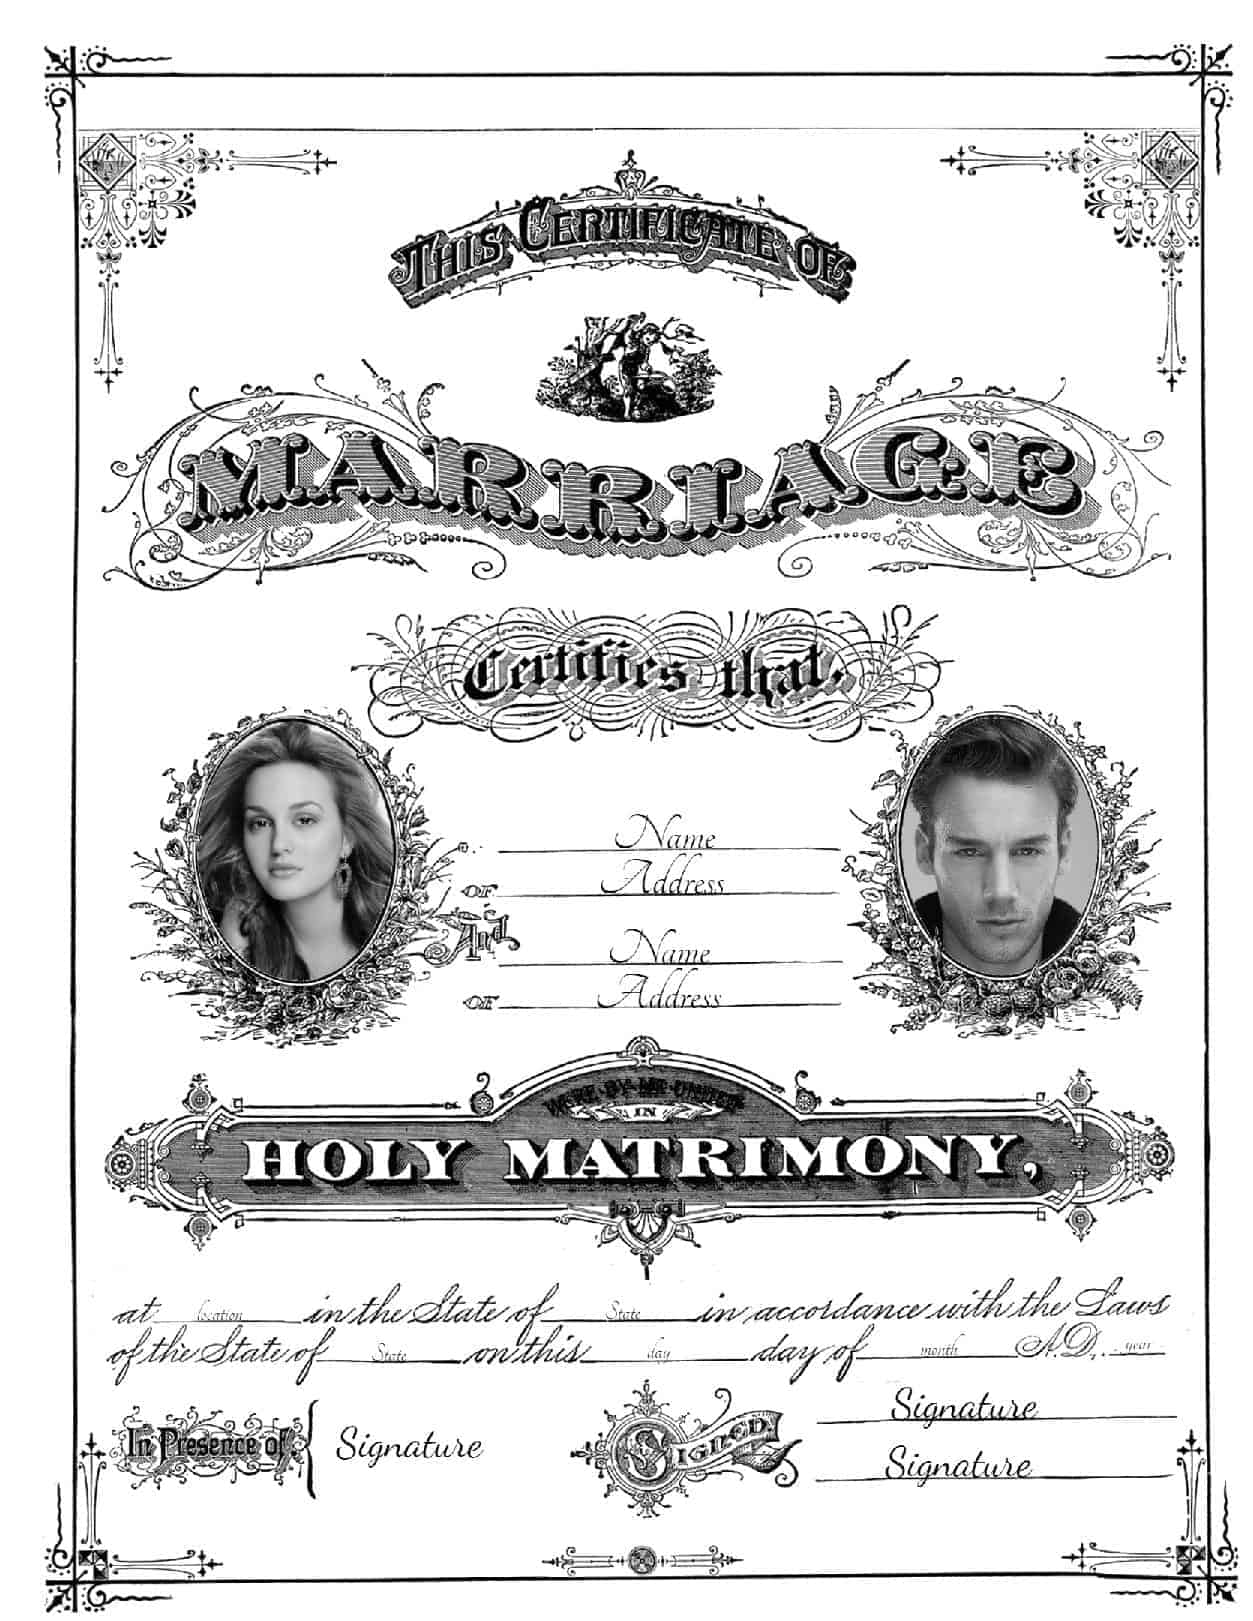 Free Marriage Certificate Template | Customize Online then Print